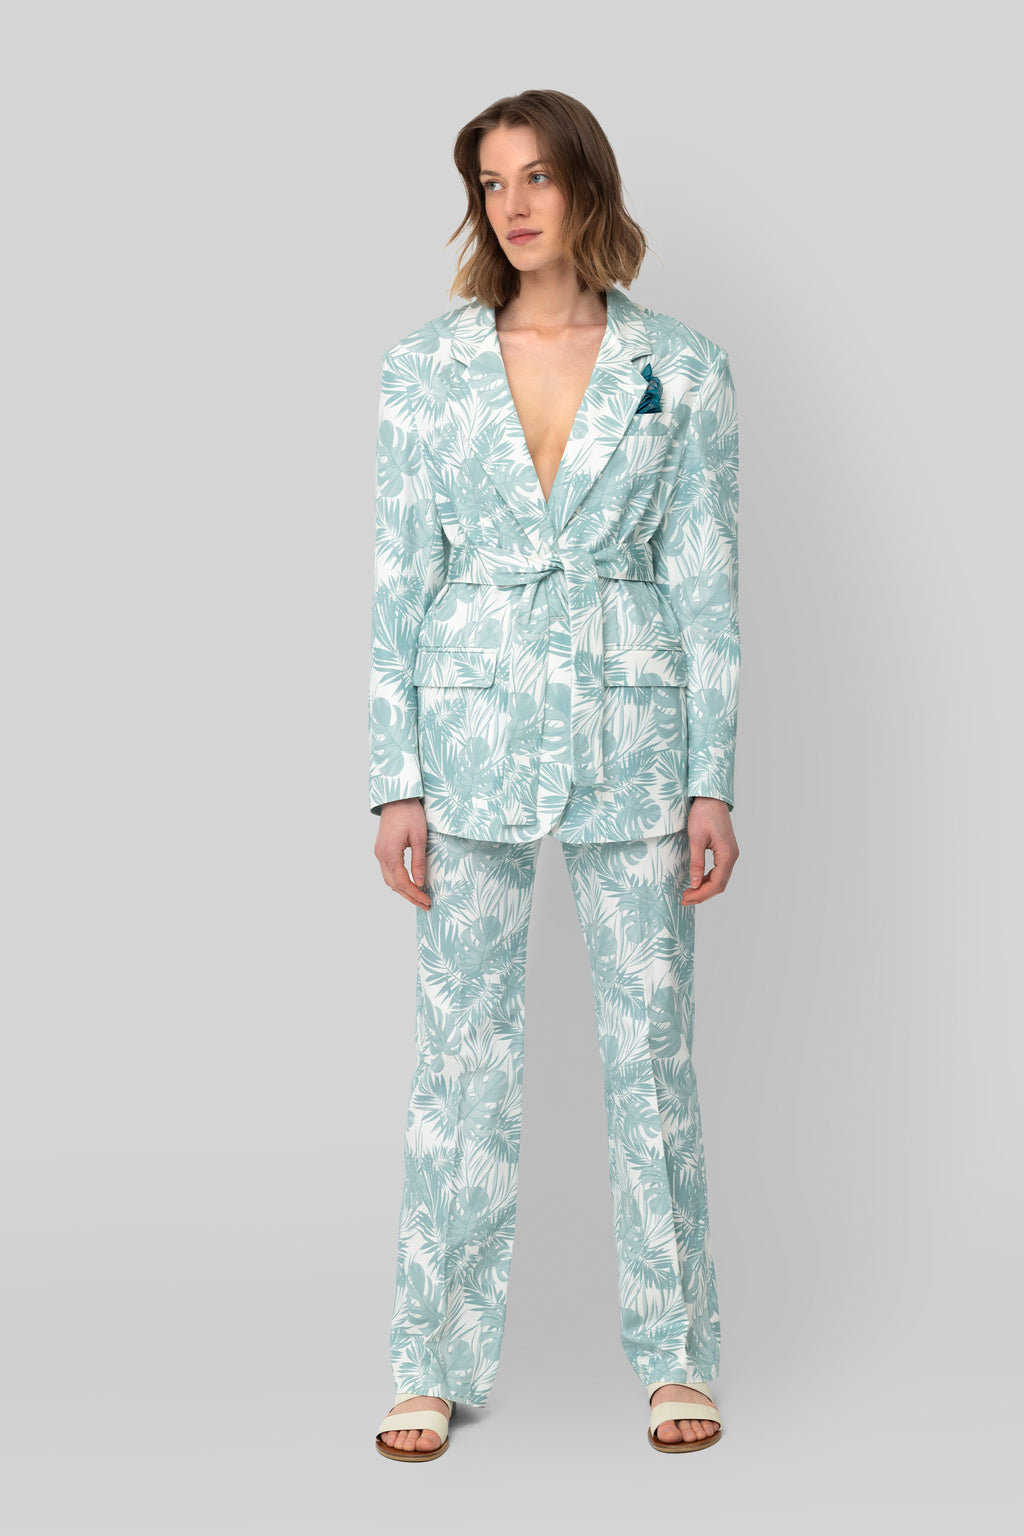 The Printed Cotton Teal Lover Blazer